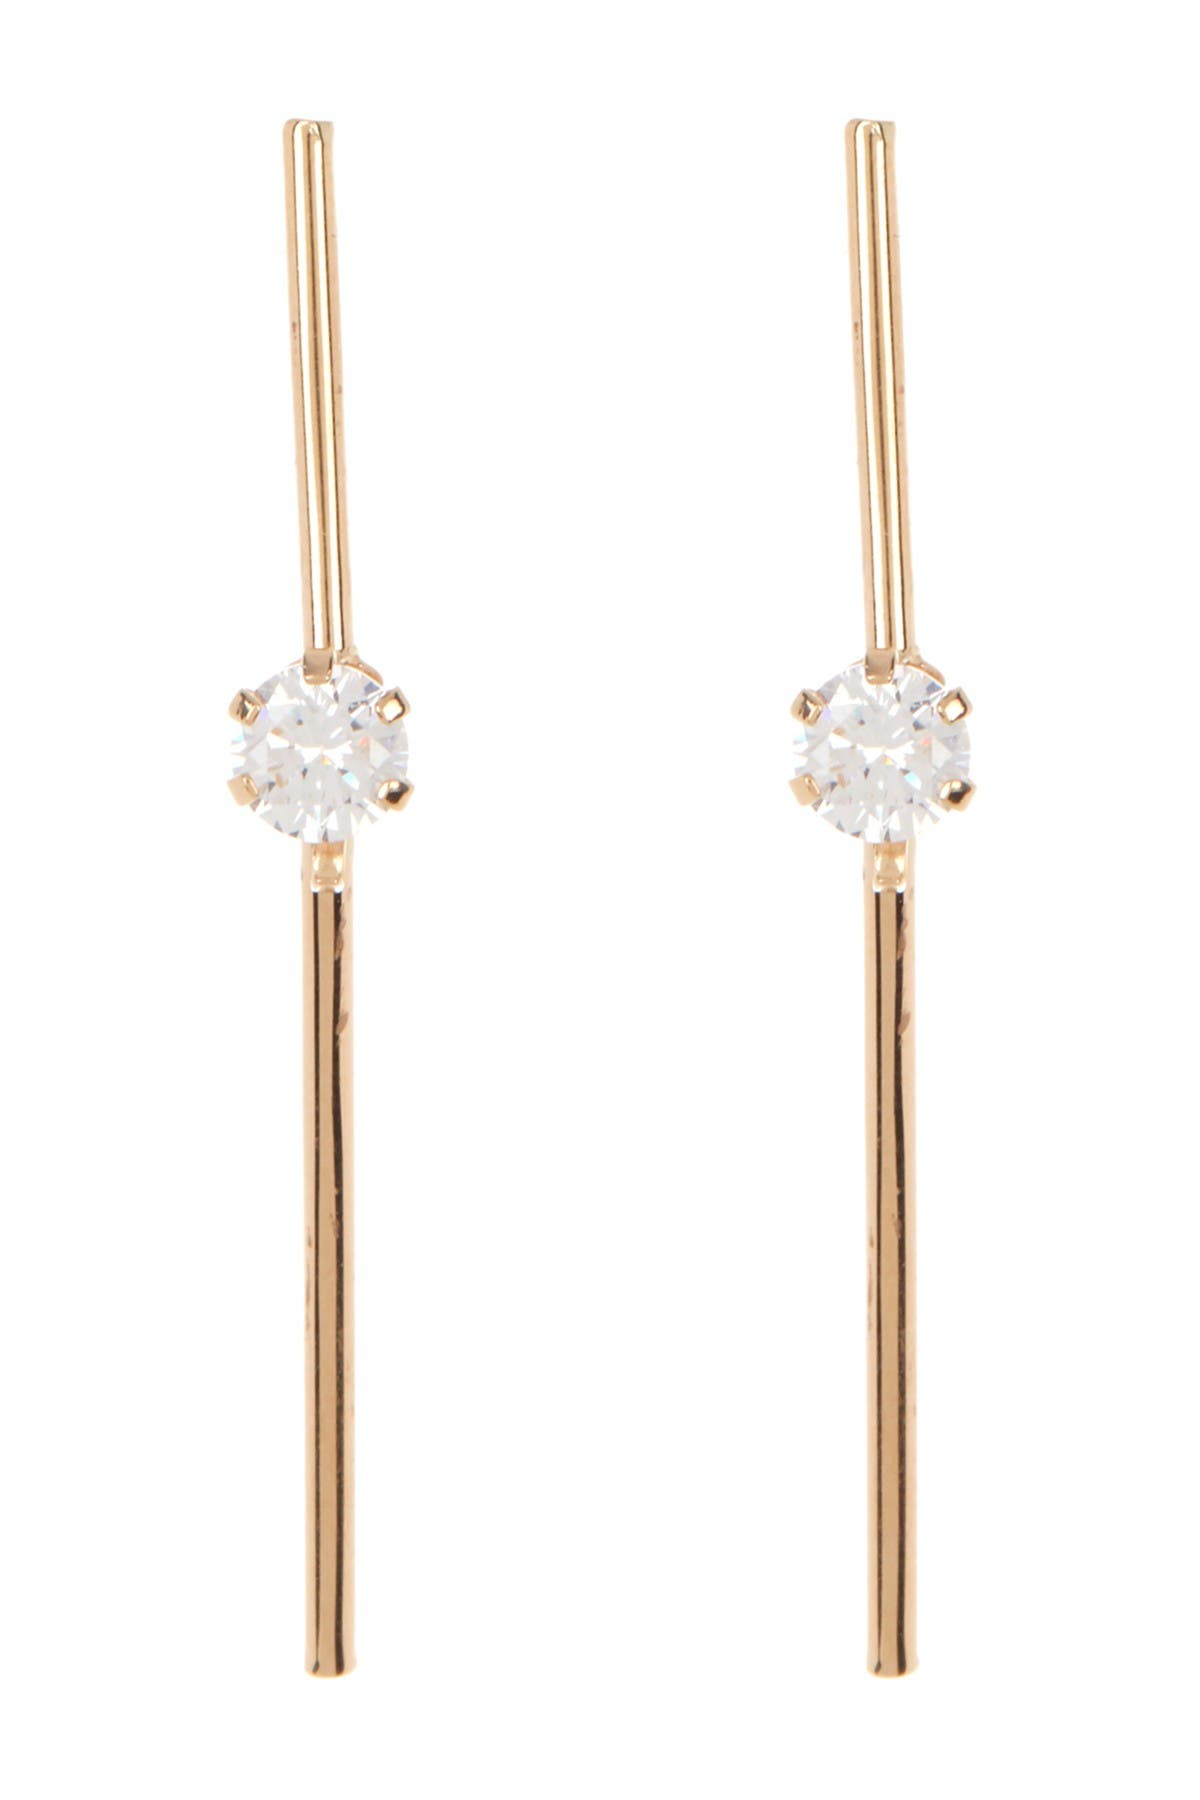 Image of Candela 14K Yellow Gold CZ Stick Dangle Earrings